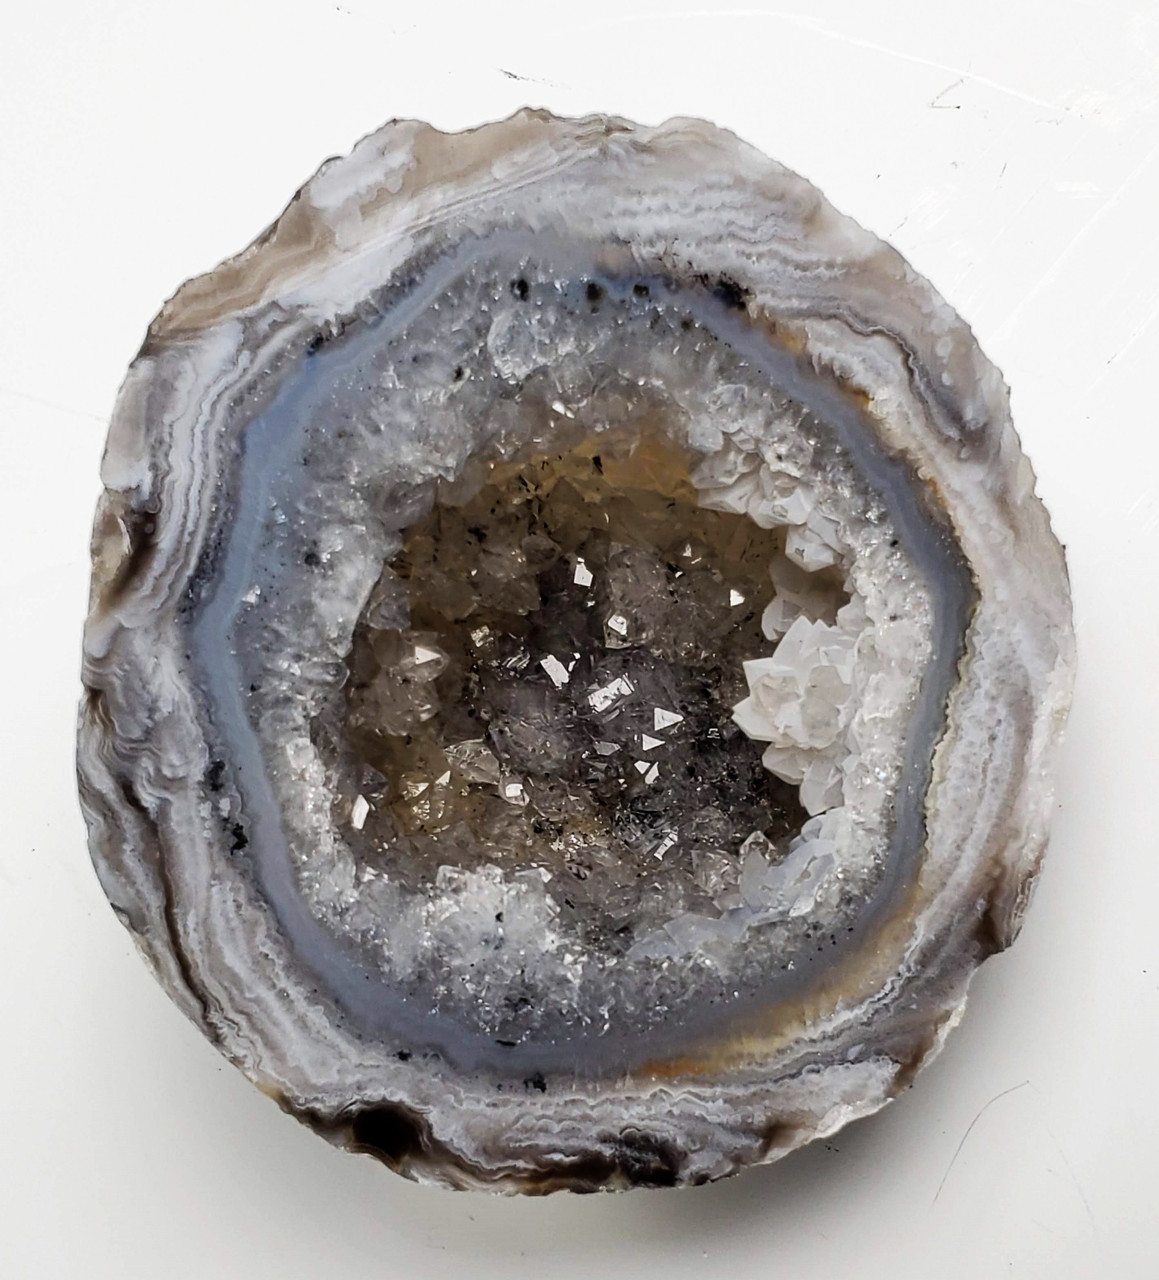 264 Cts MX-4053 Agate Slice Druzy Geode Top Rare! Blue Slice Agate Geode Cabochon Natural Slice Druzy Agate Gemstone Agate For Necklace